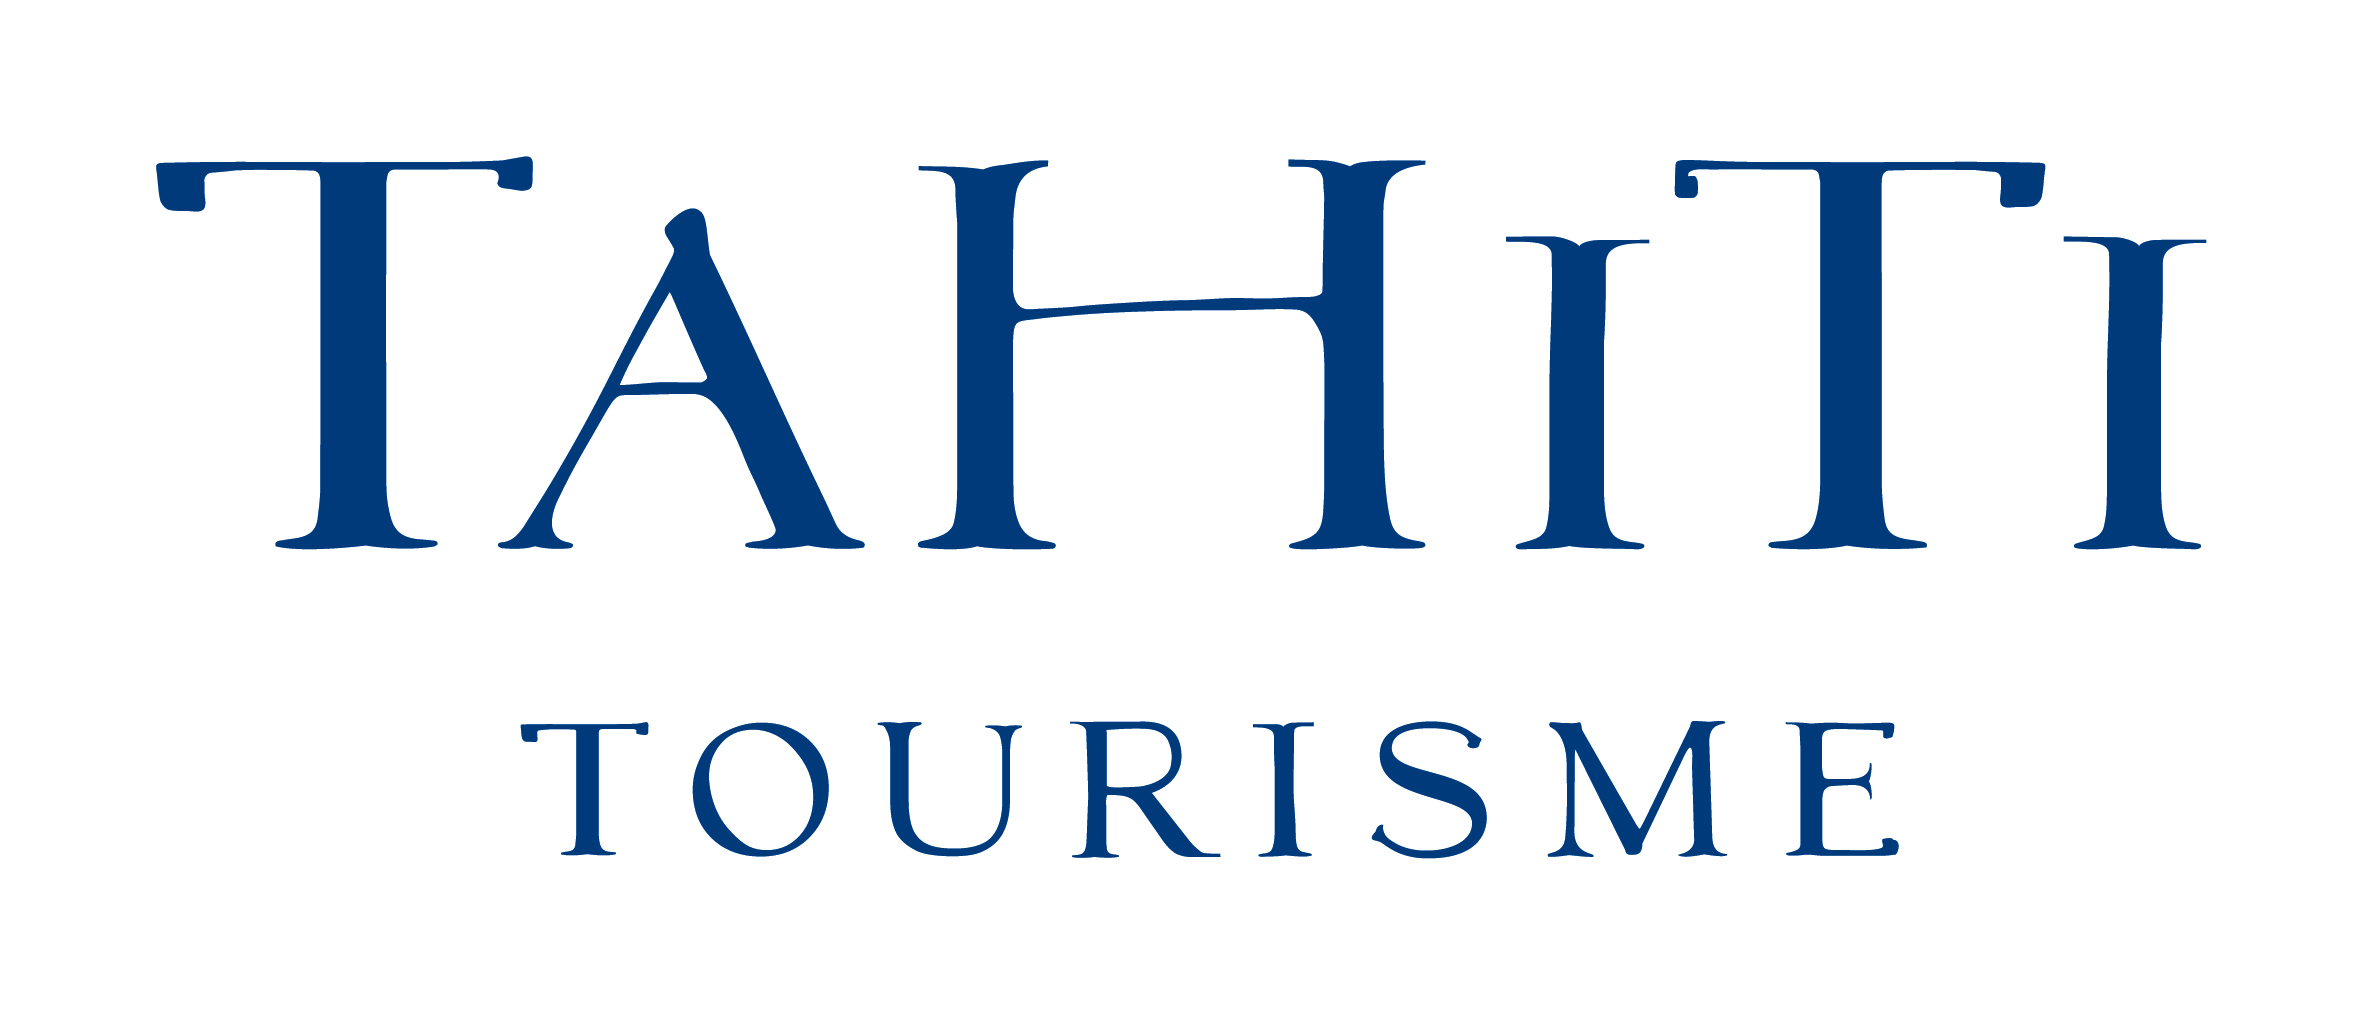 Tahiti Tourisme Corporate.jpg